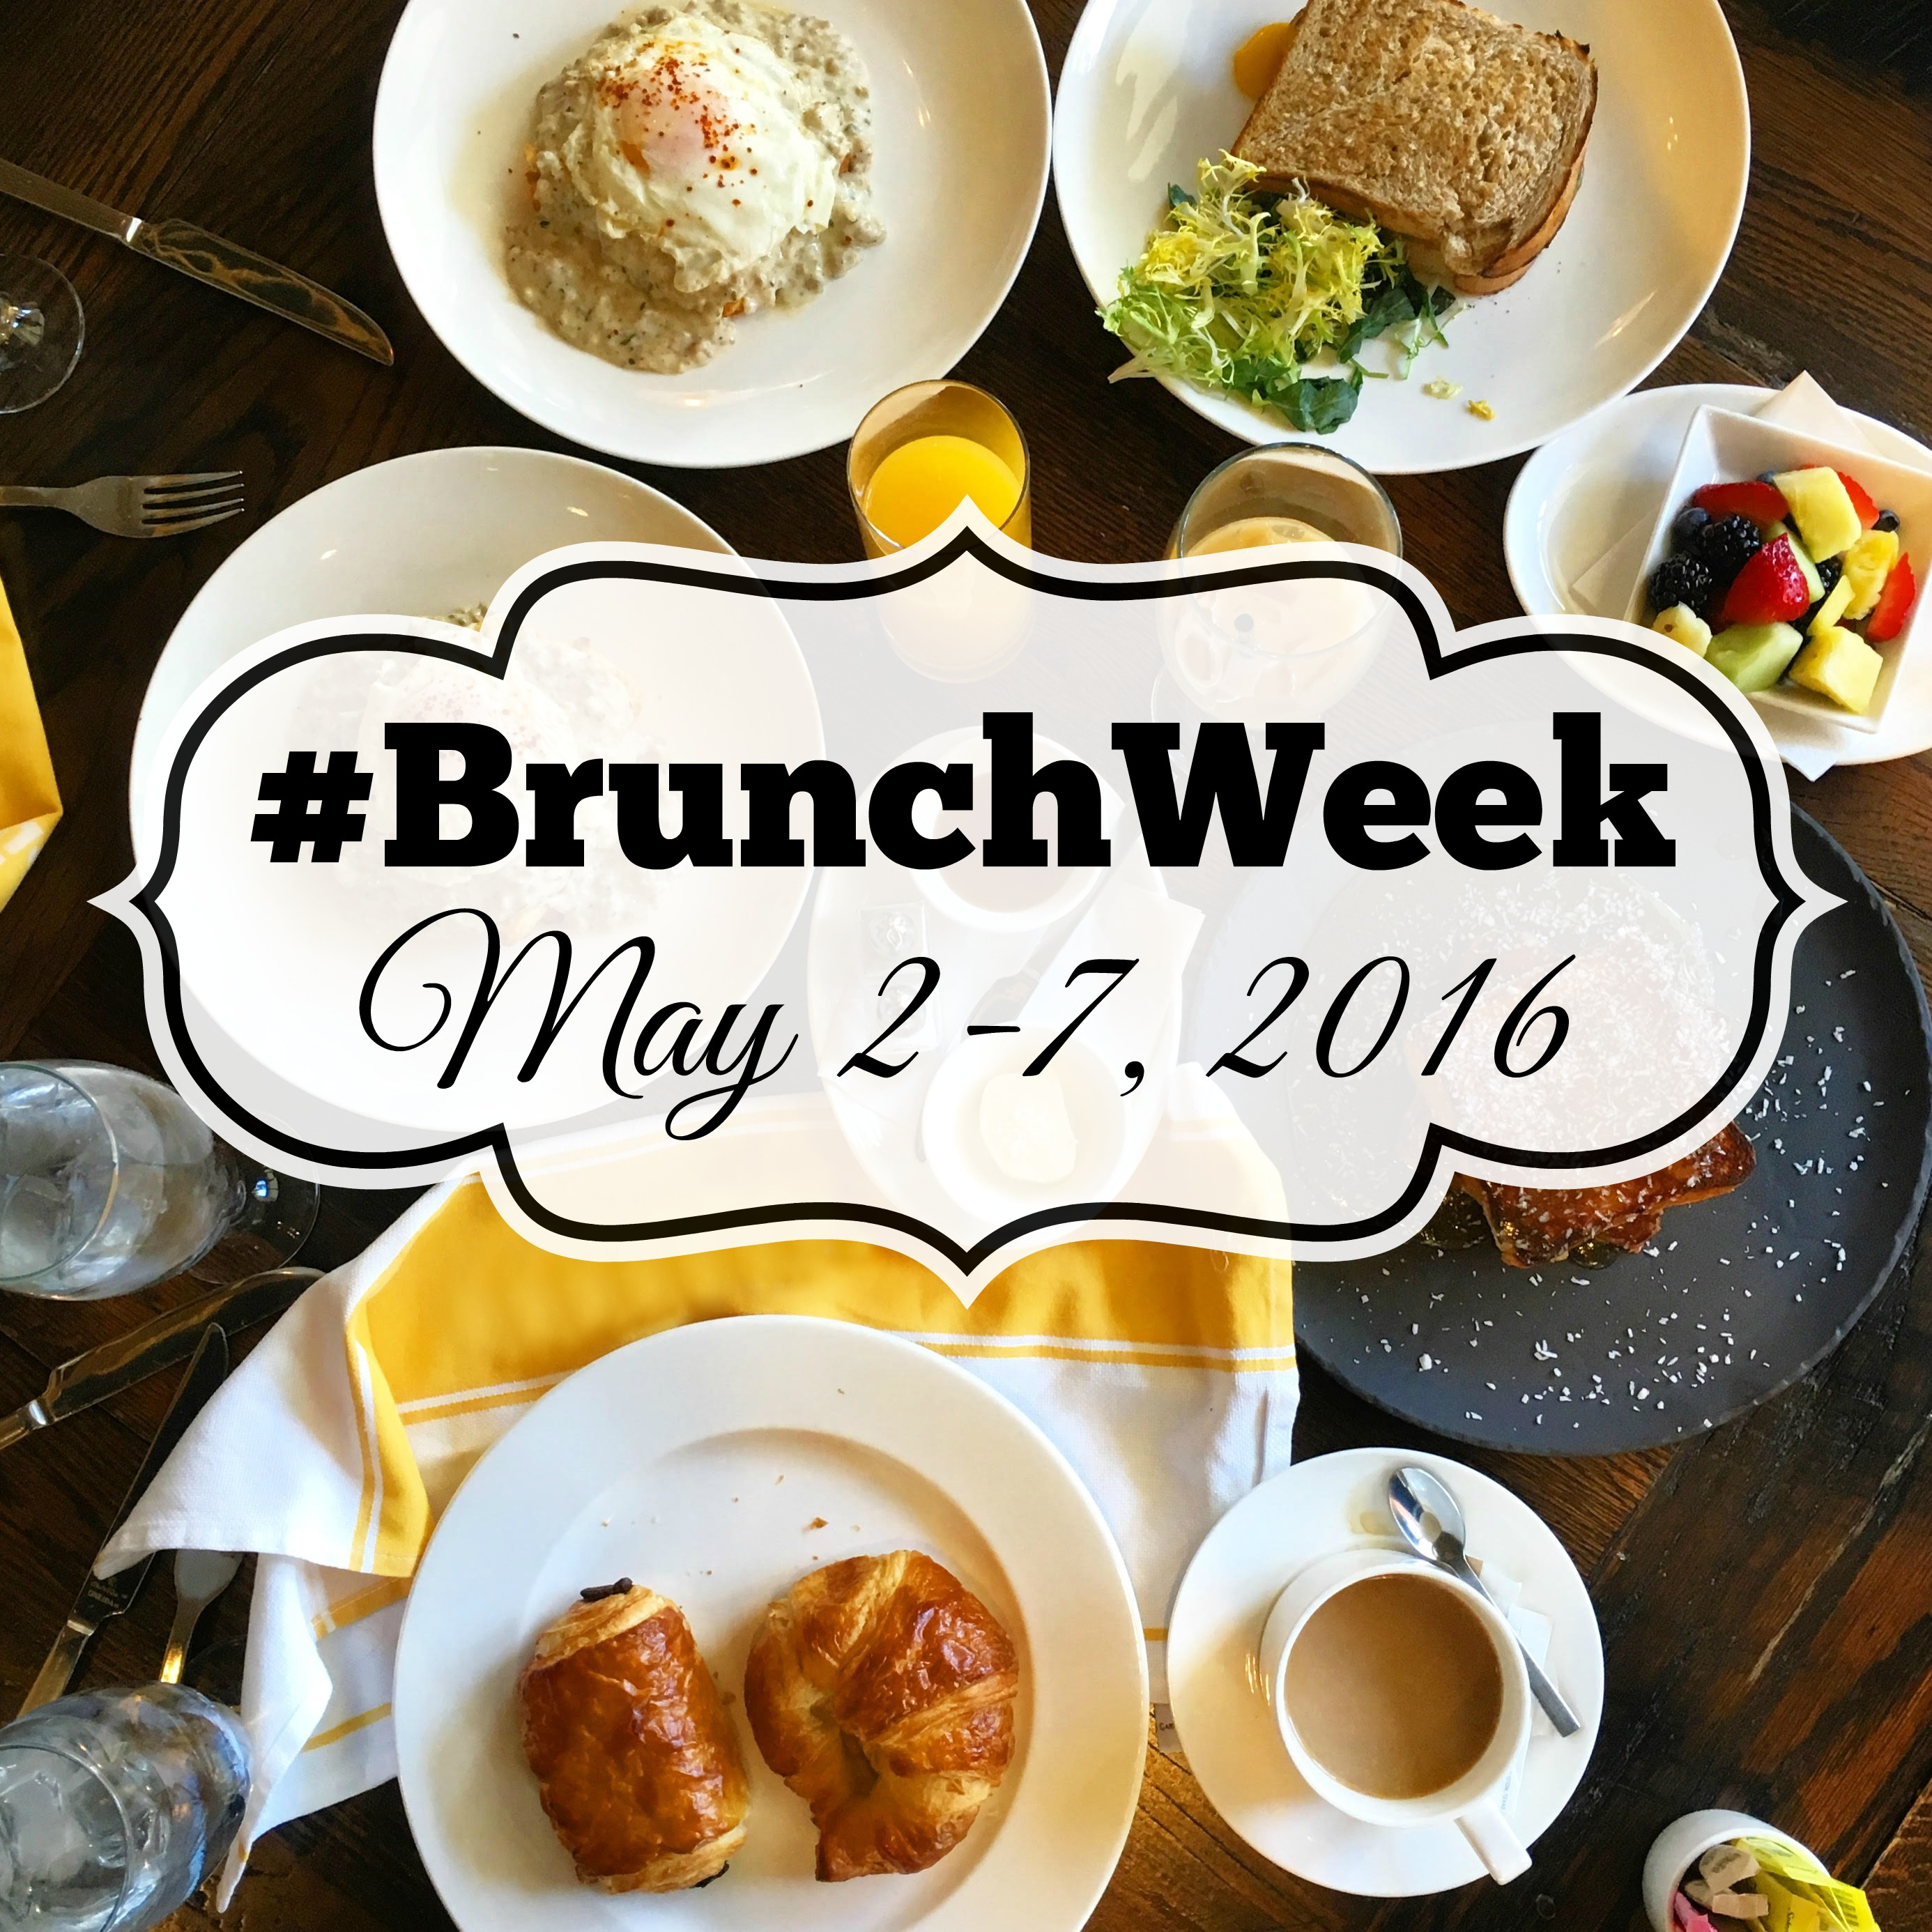 #BrunchWeek 2016